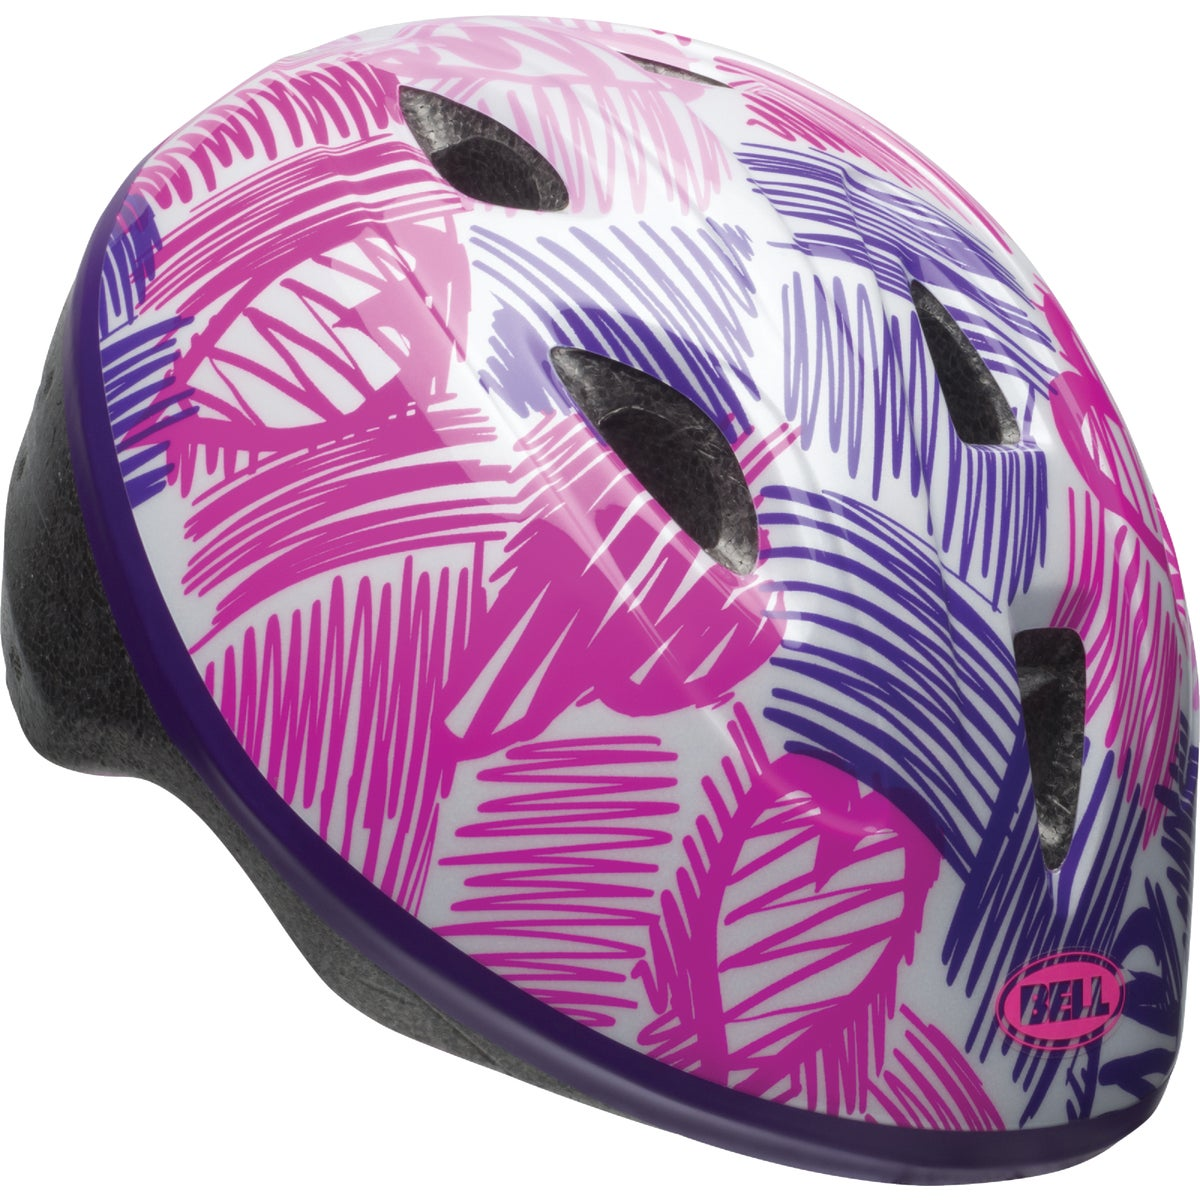 GIRLS TODDLER HELMET - 7020754 by Bell Sports